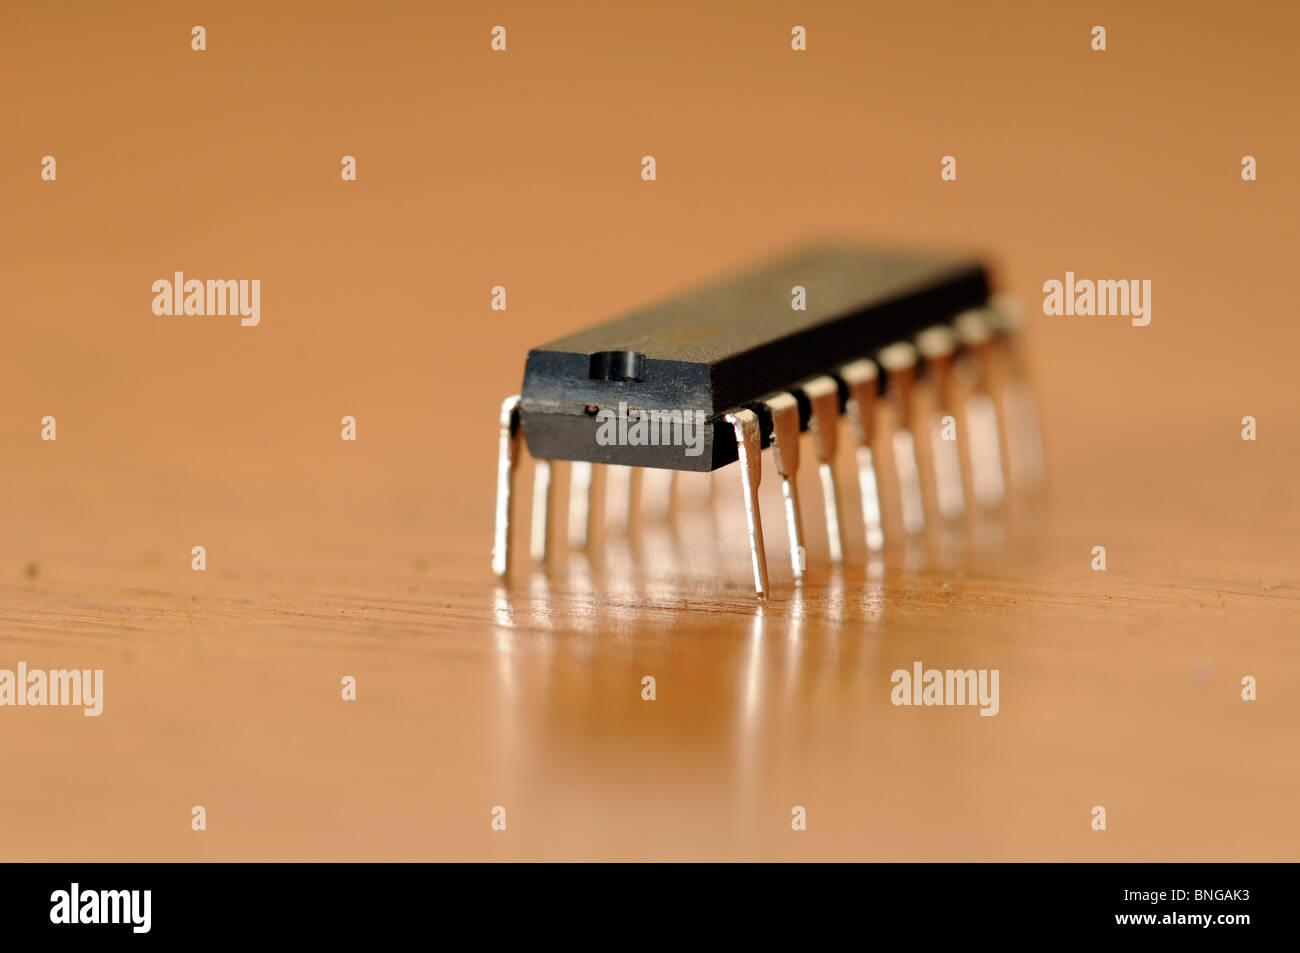 Integrated Circuit Chip Stock Photos Chips 16 Pin Image